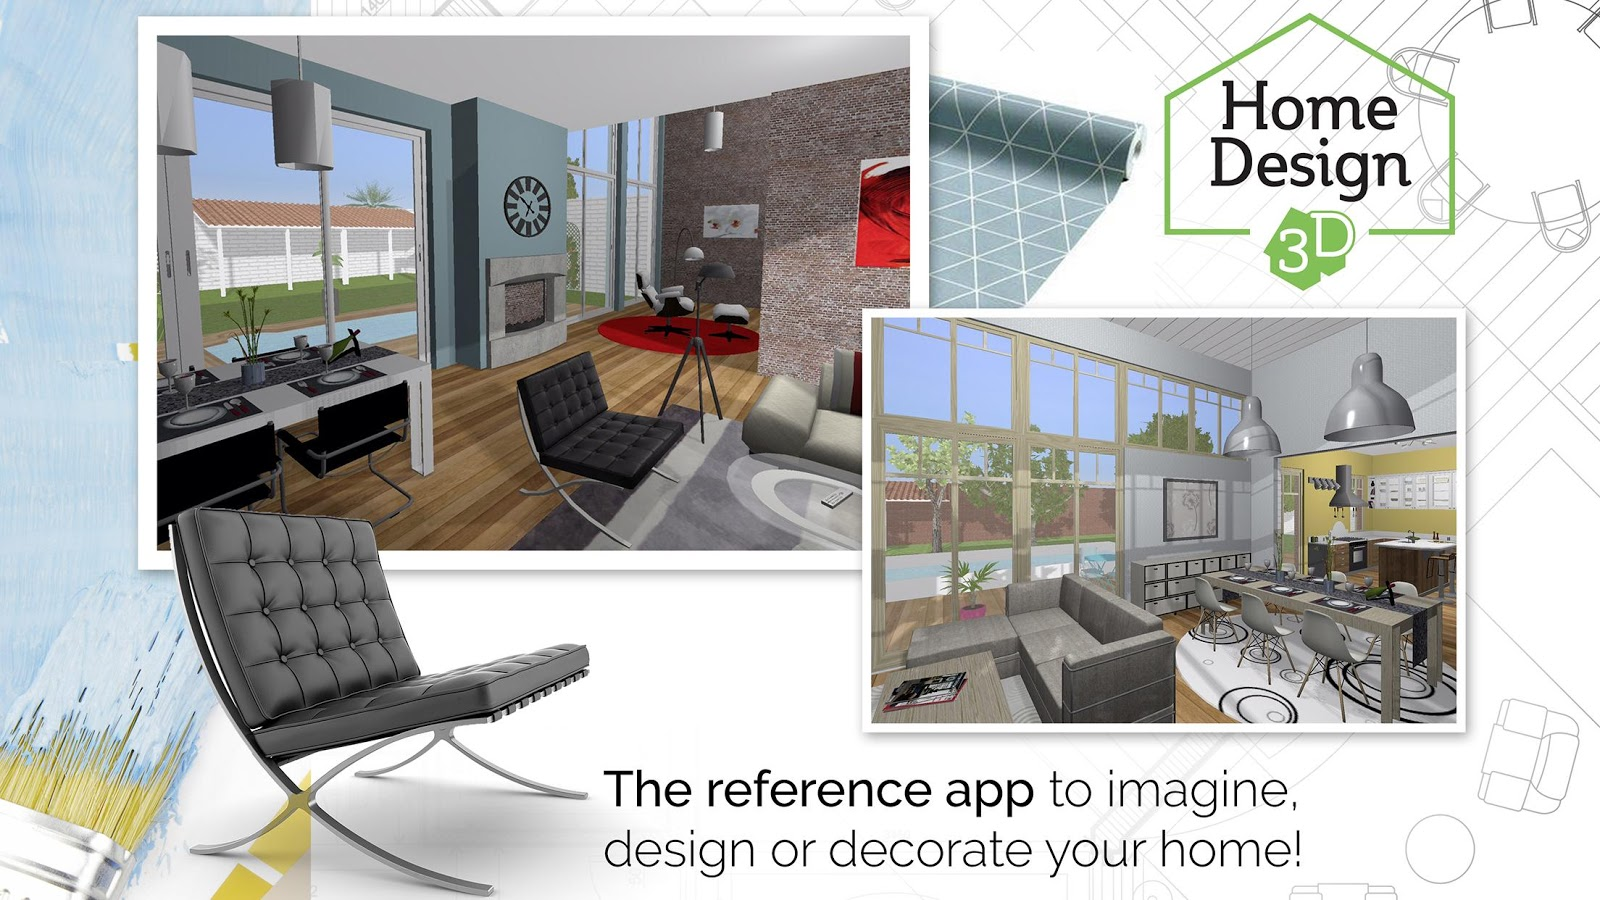 Home design 3d freemium android google play for Classic underground house